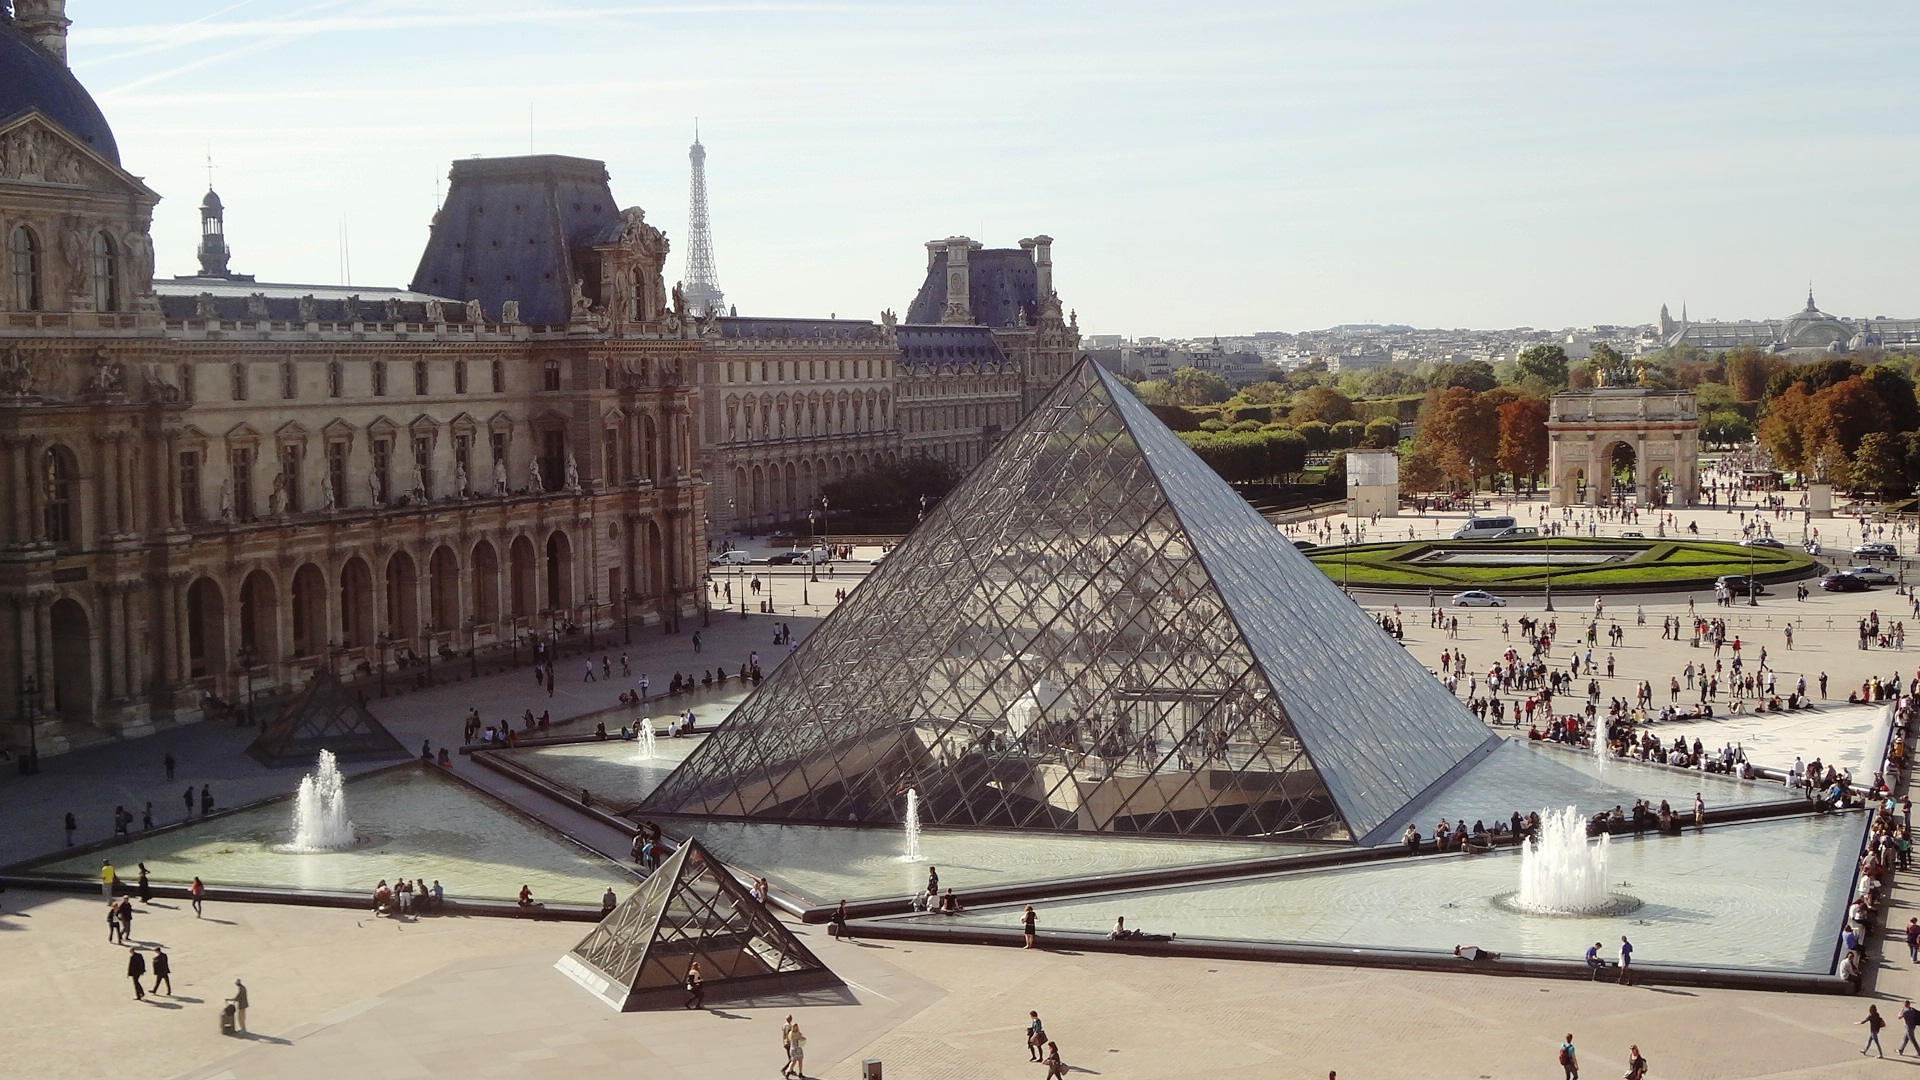 Guided Louvre tour